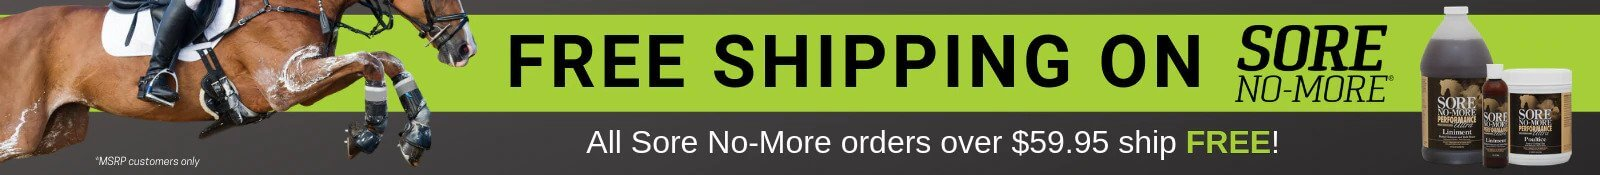 Free Shipping on Sore No-More